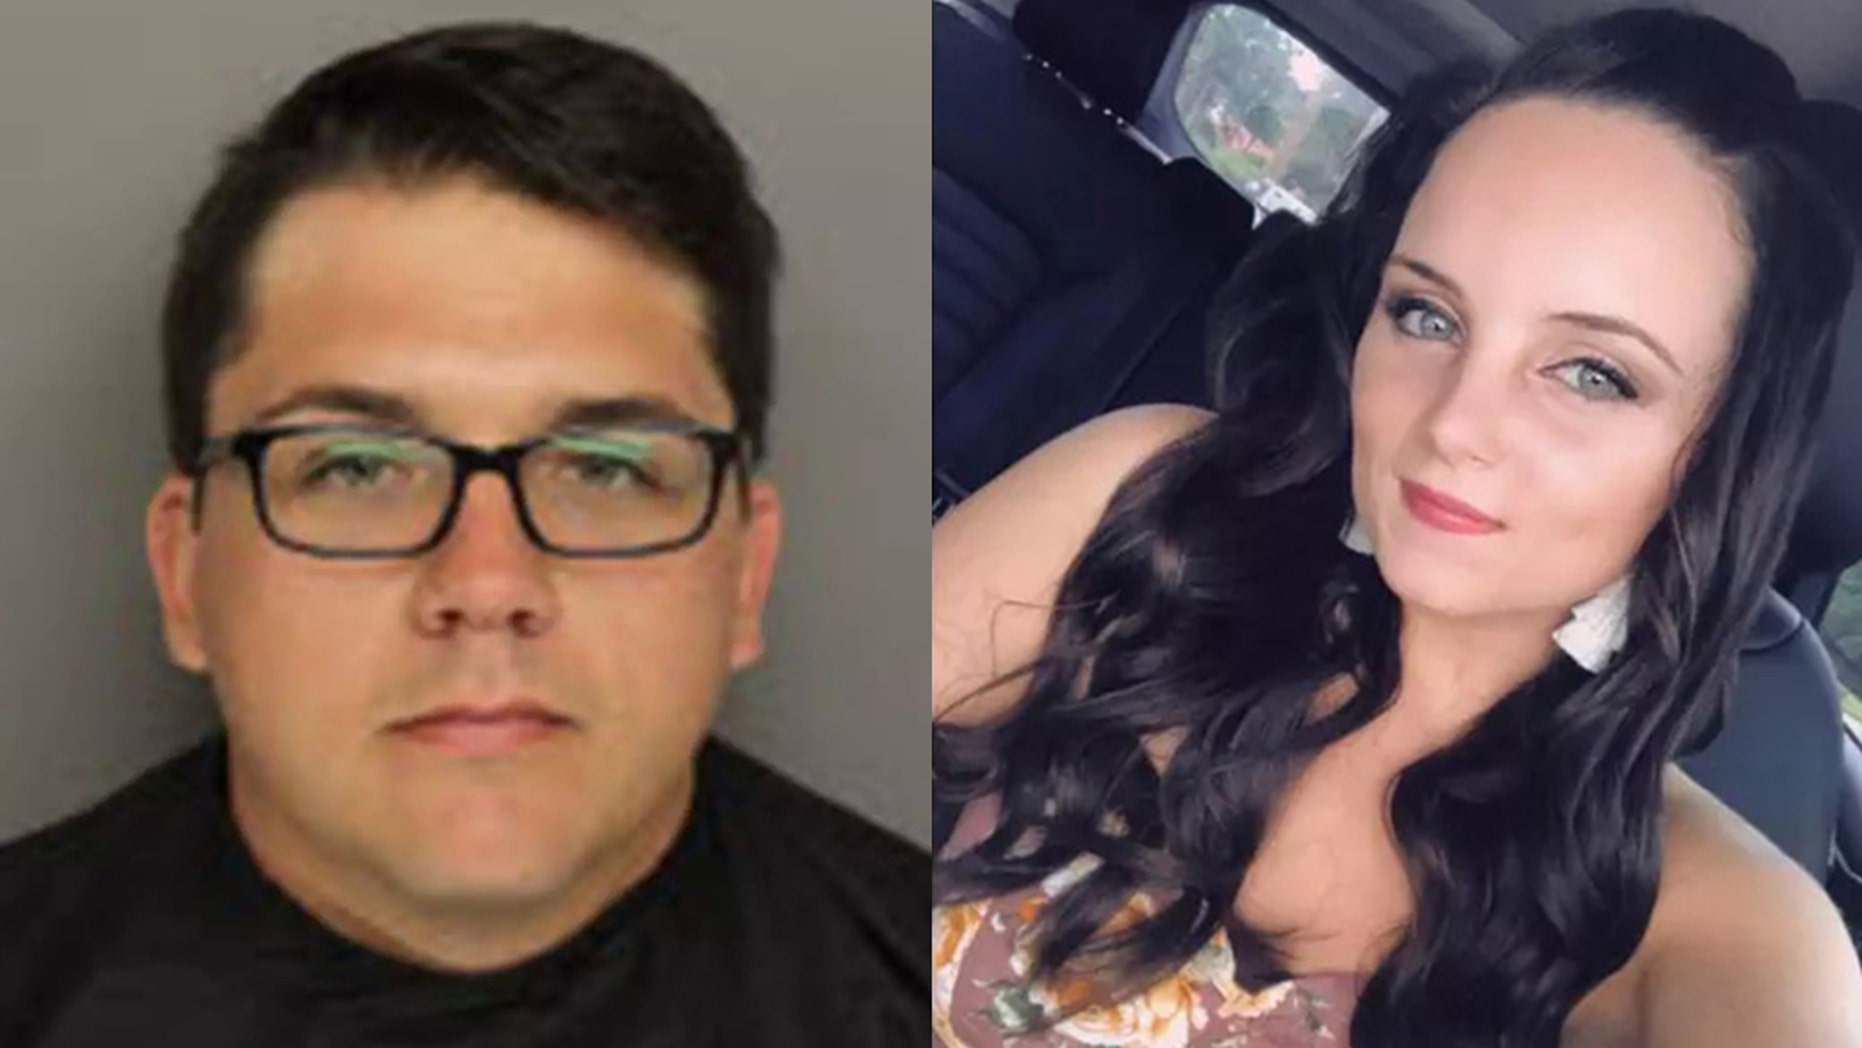 Seth Fluery, left, was sentenced to 12 years in prison last week for biting Kayla Hayes' bottom lip off.